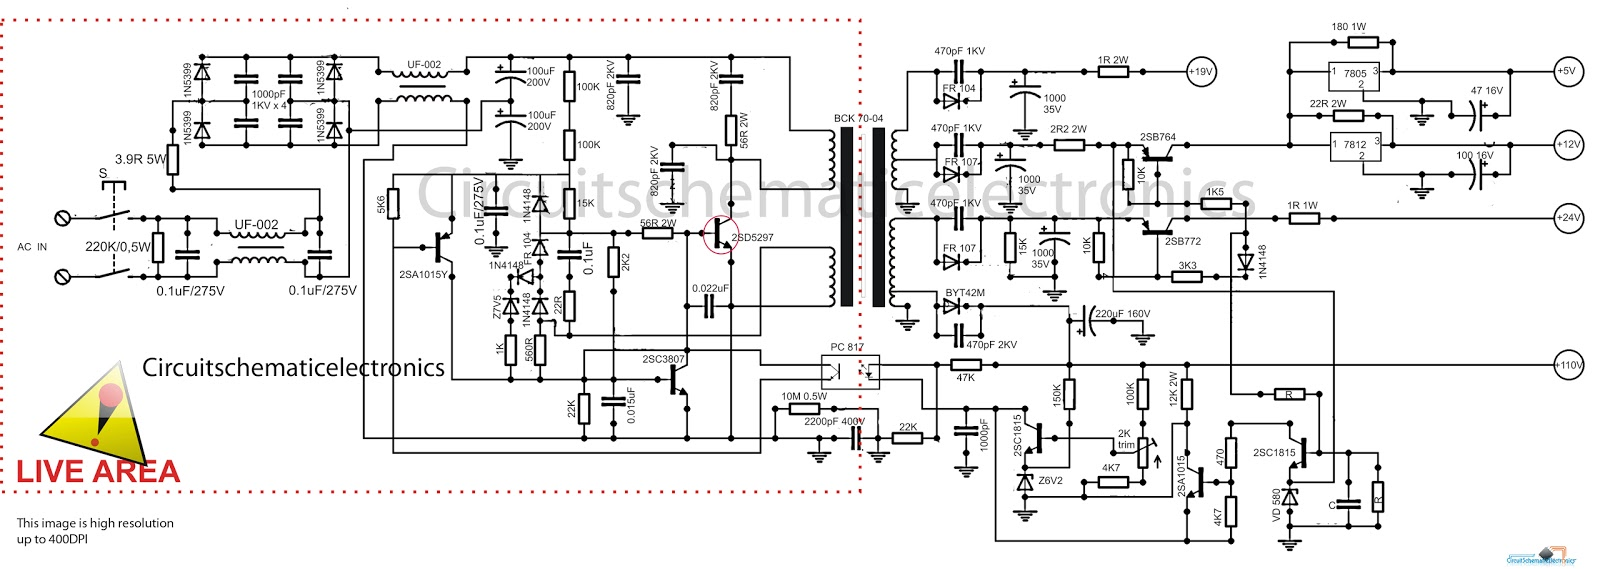 hight resolution of tv power schematic wiring diagram files led tv power supply schematic tv power schematic